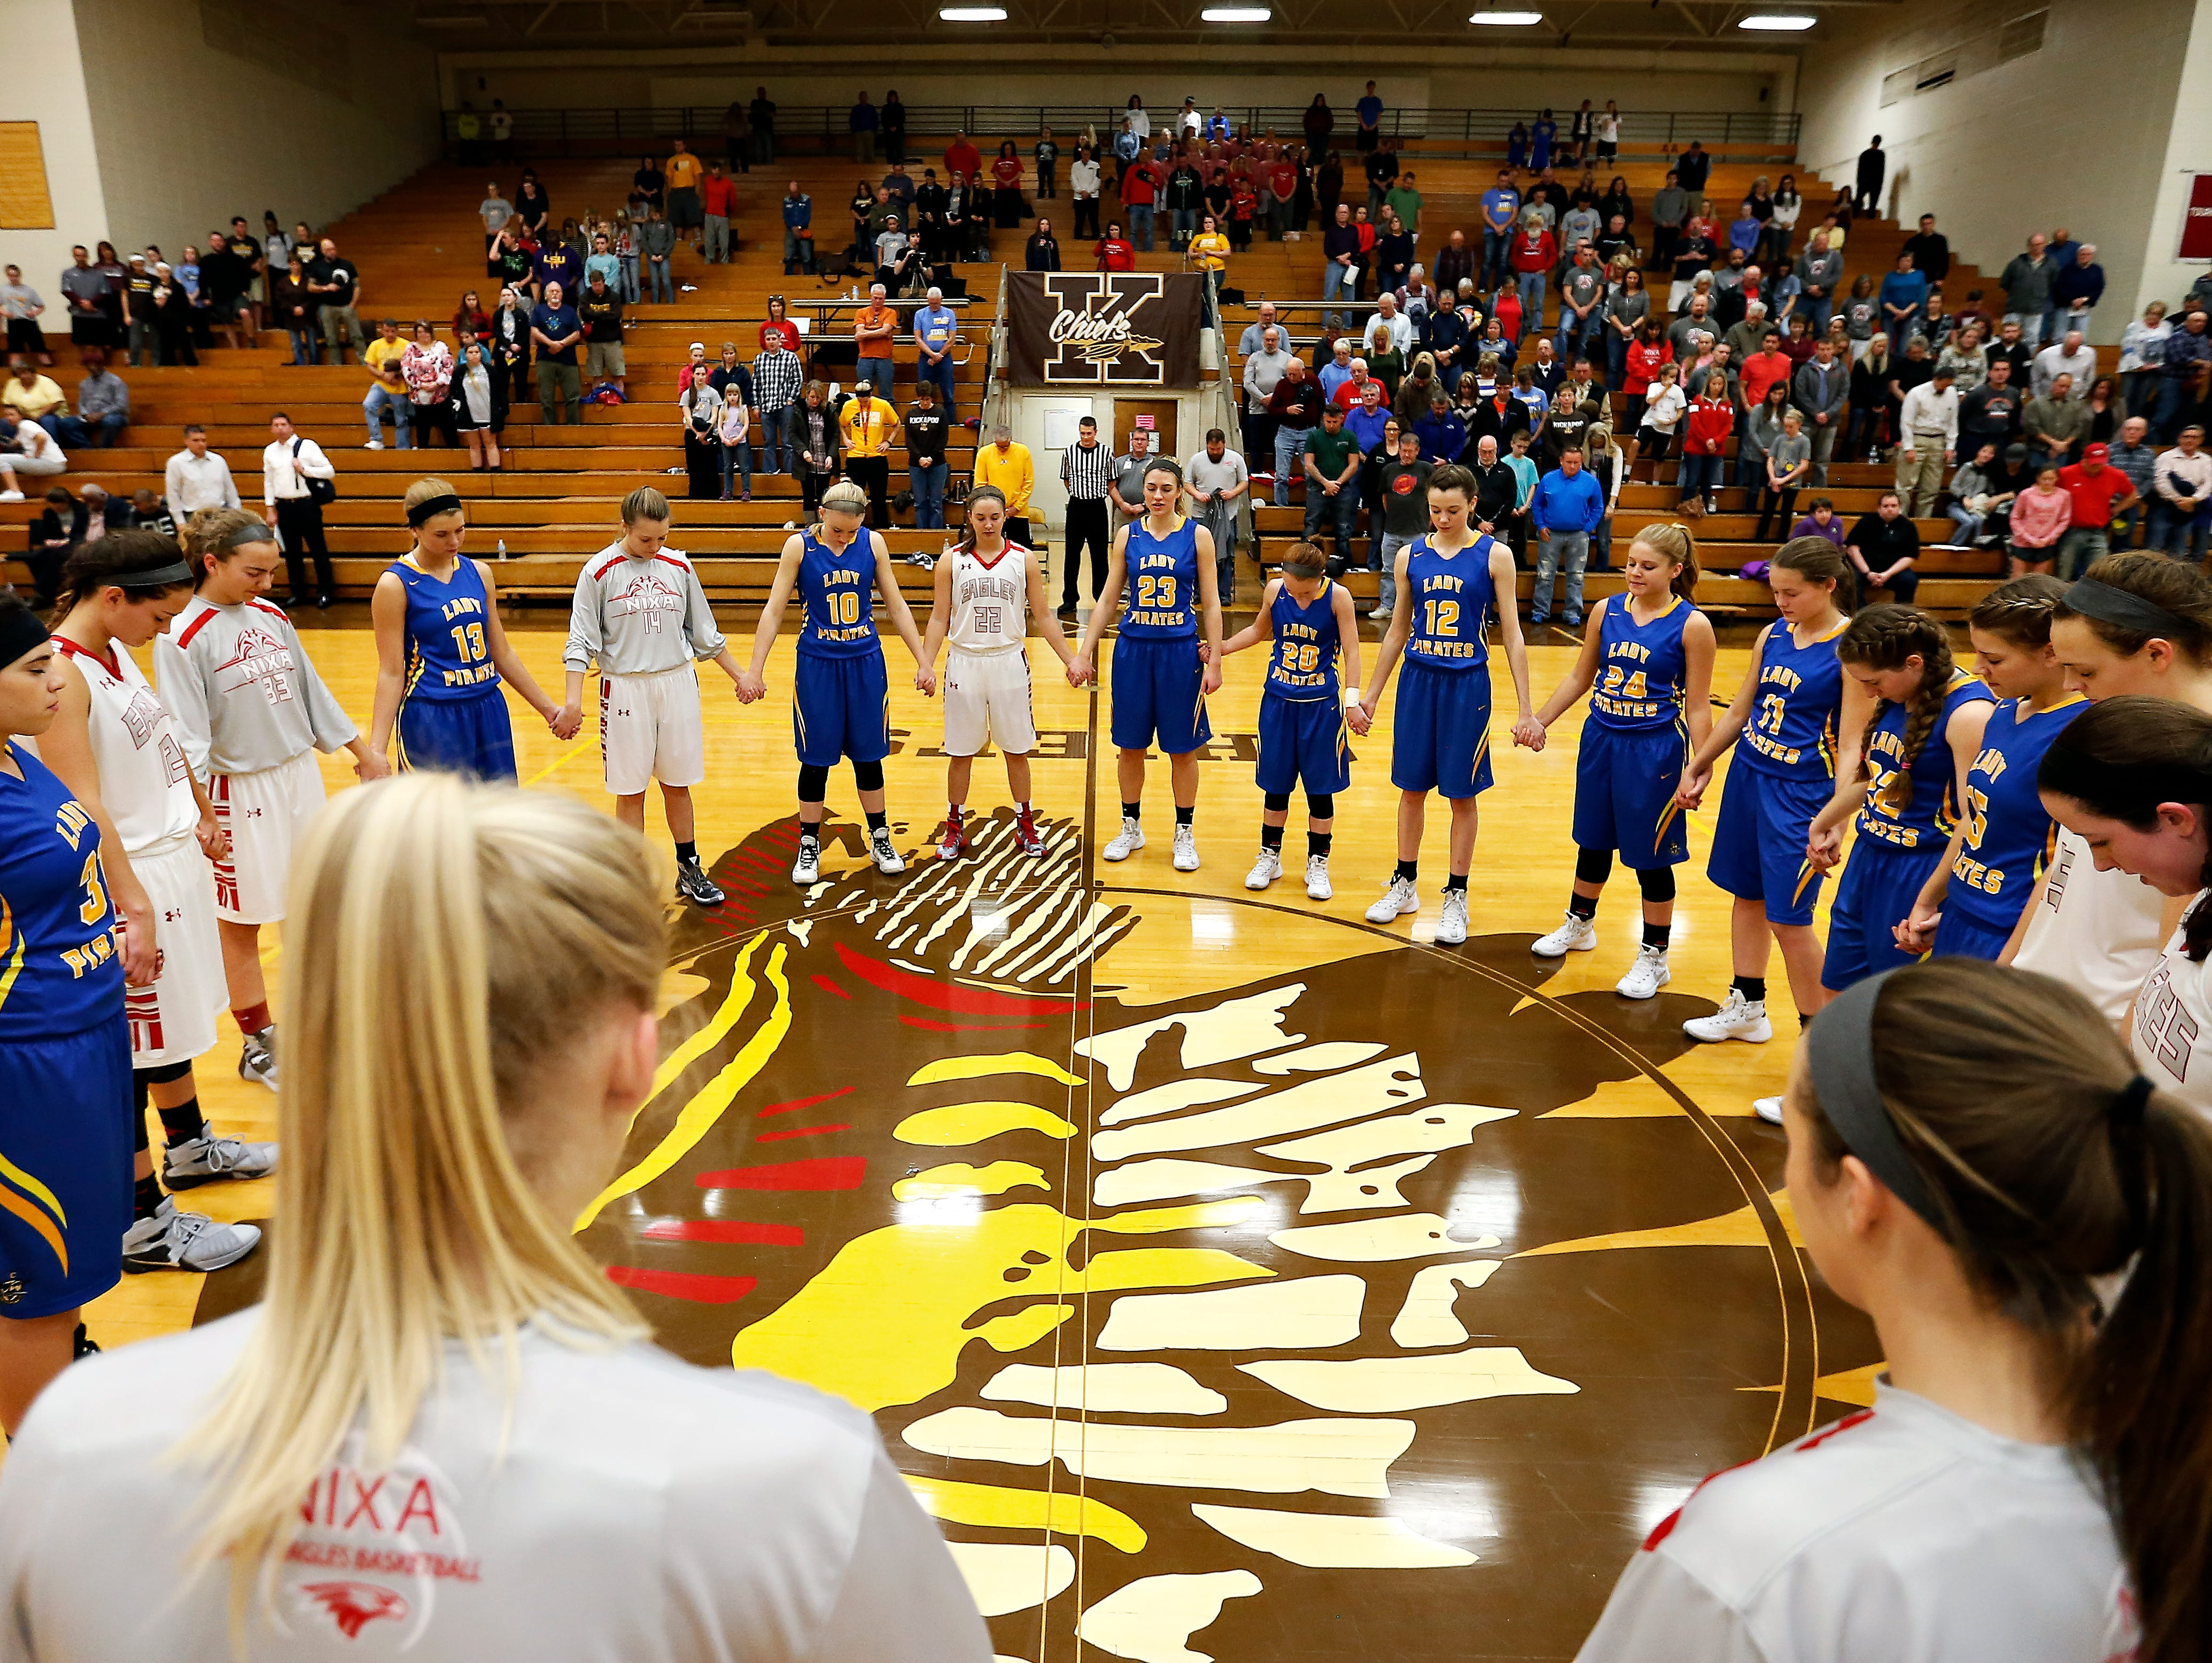 Crane High School forward Emma Lander (23) leads the Lady Pirates and the Nixa Eagles in prayer before the start of their game at Kickapoo High School in Springfield, Mo. on Dec. 11, 2015.